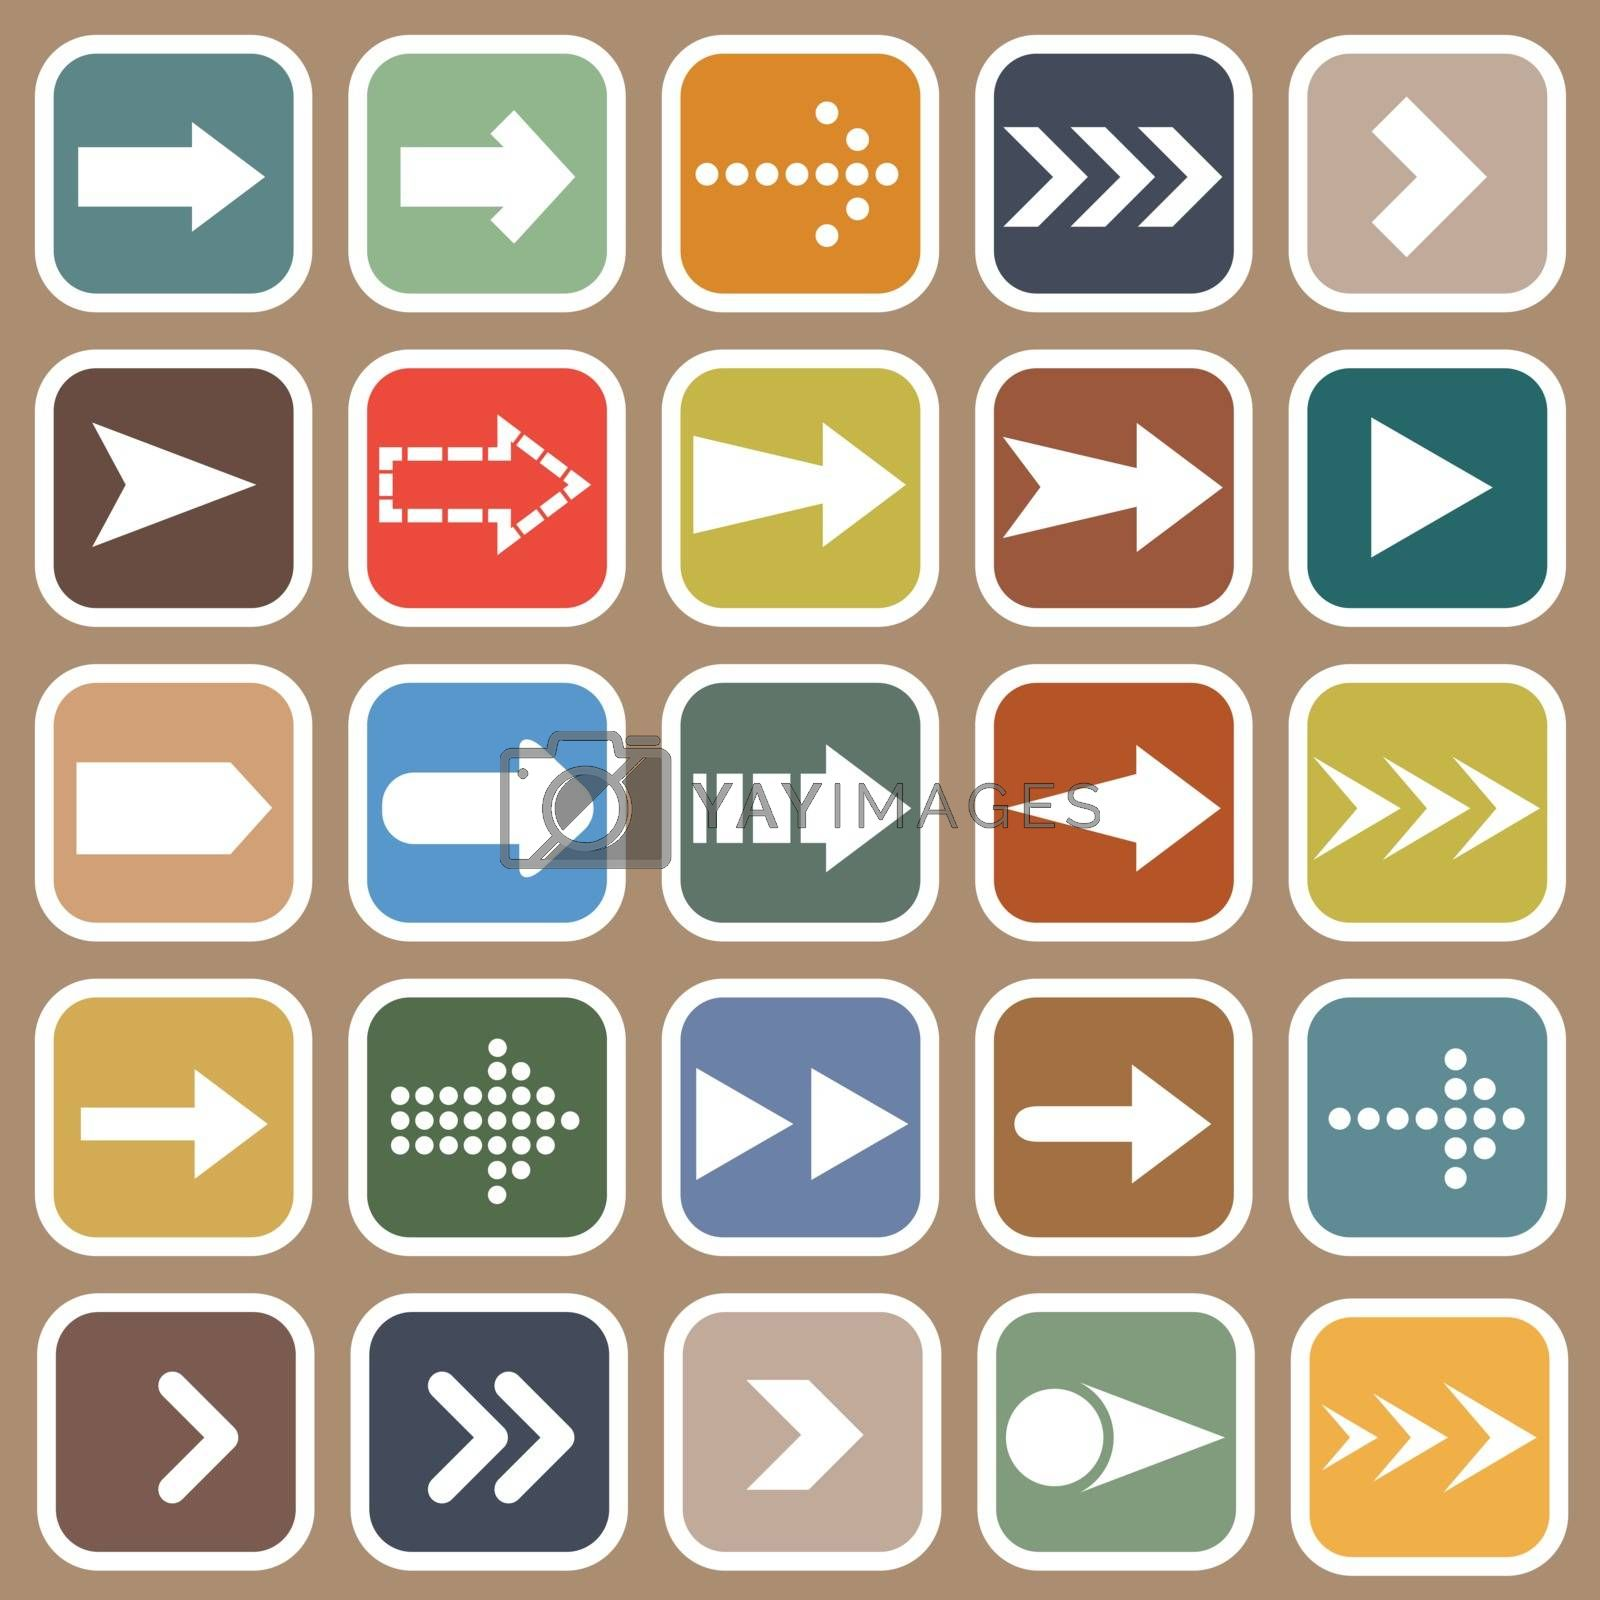 Arrow flat icons on brown background by punsayaporn